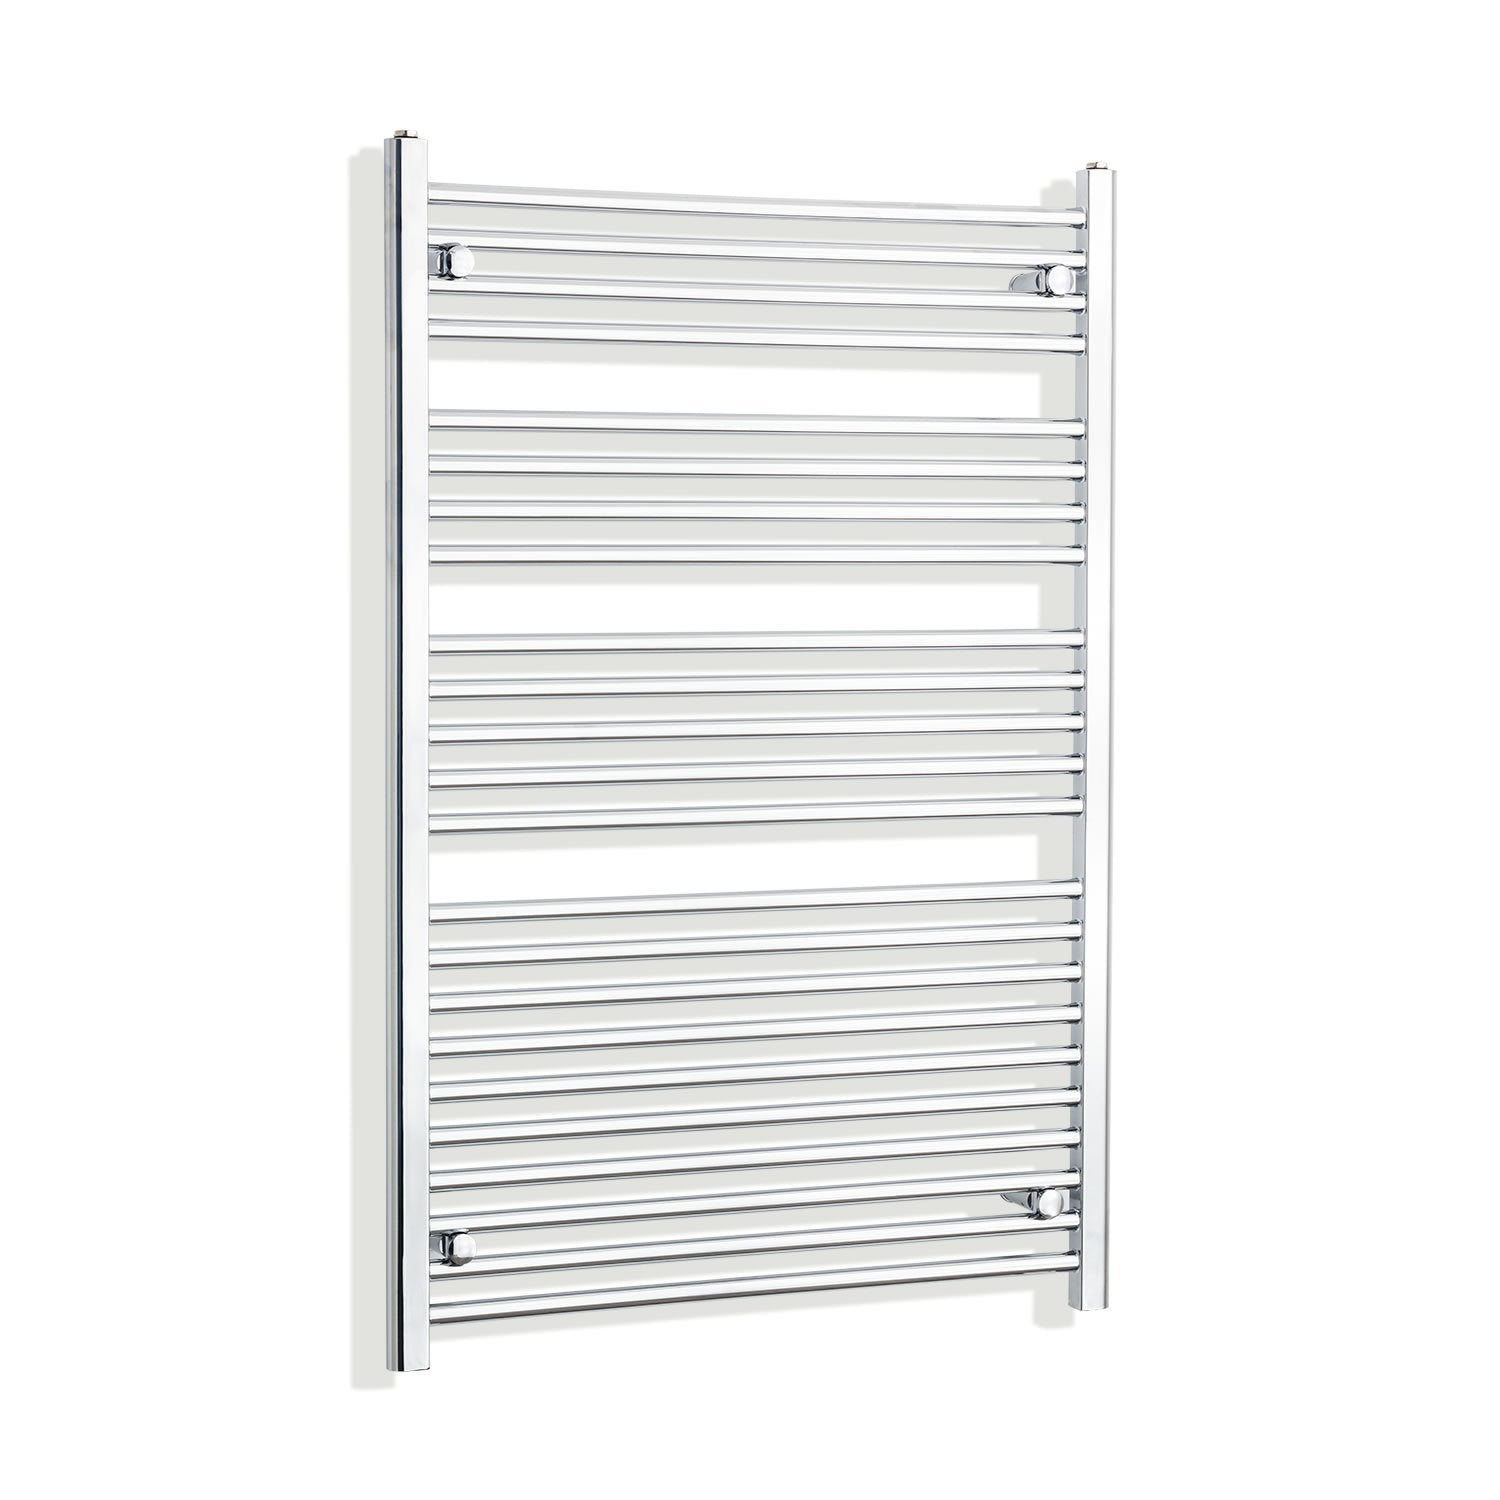 900mm Wide 1200mm High Flat Chrome Heated Towel Rail Radiator HTR,Towel Rail Only